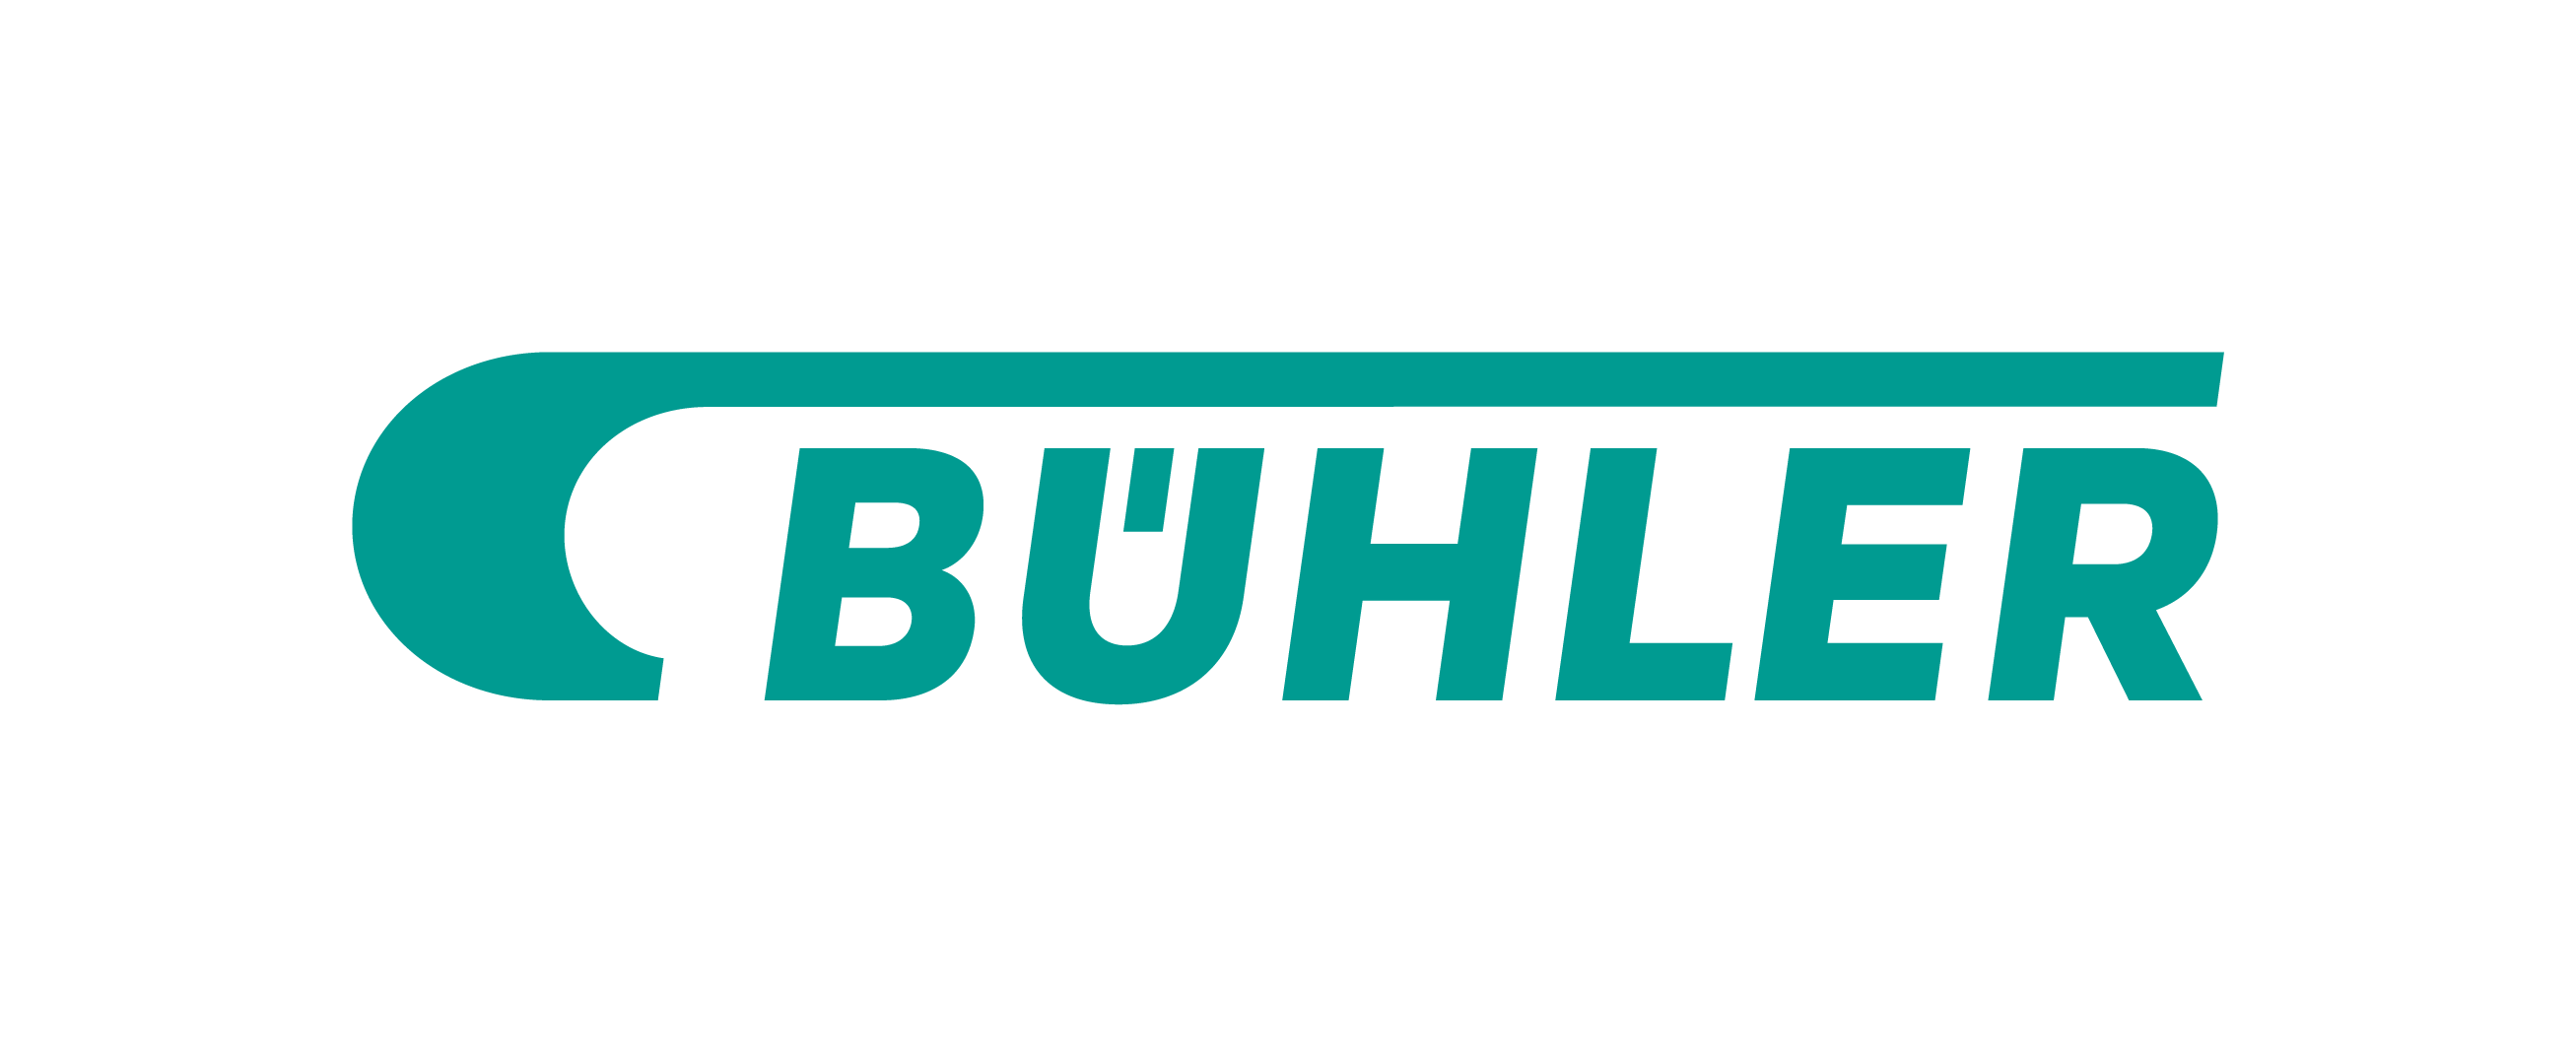 http://mecatronica.ind.br/loja/wp-content/uploads/2016/11/buhler_logo_RGB.png